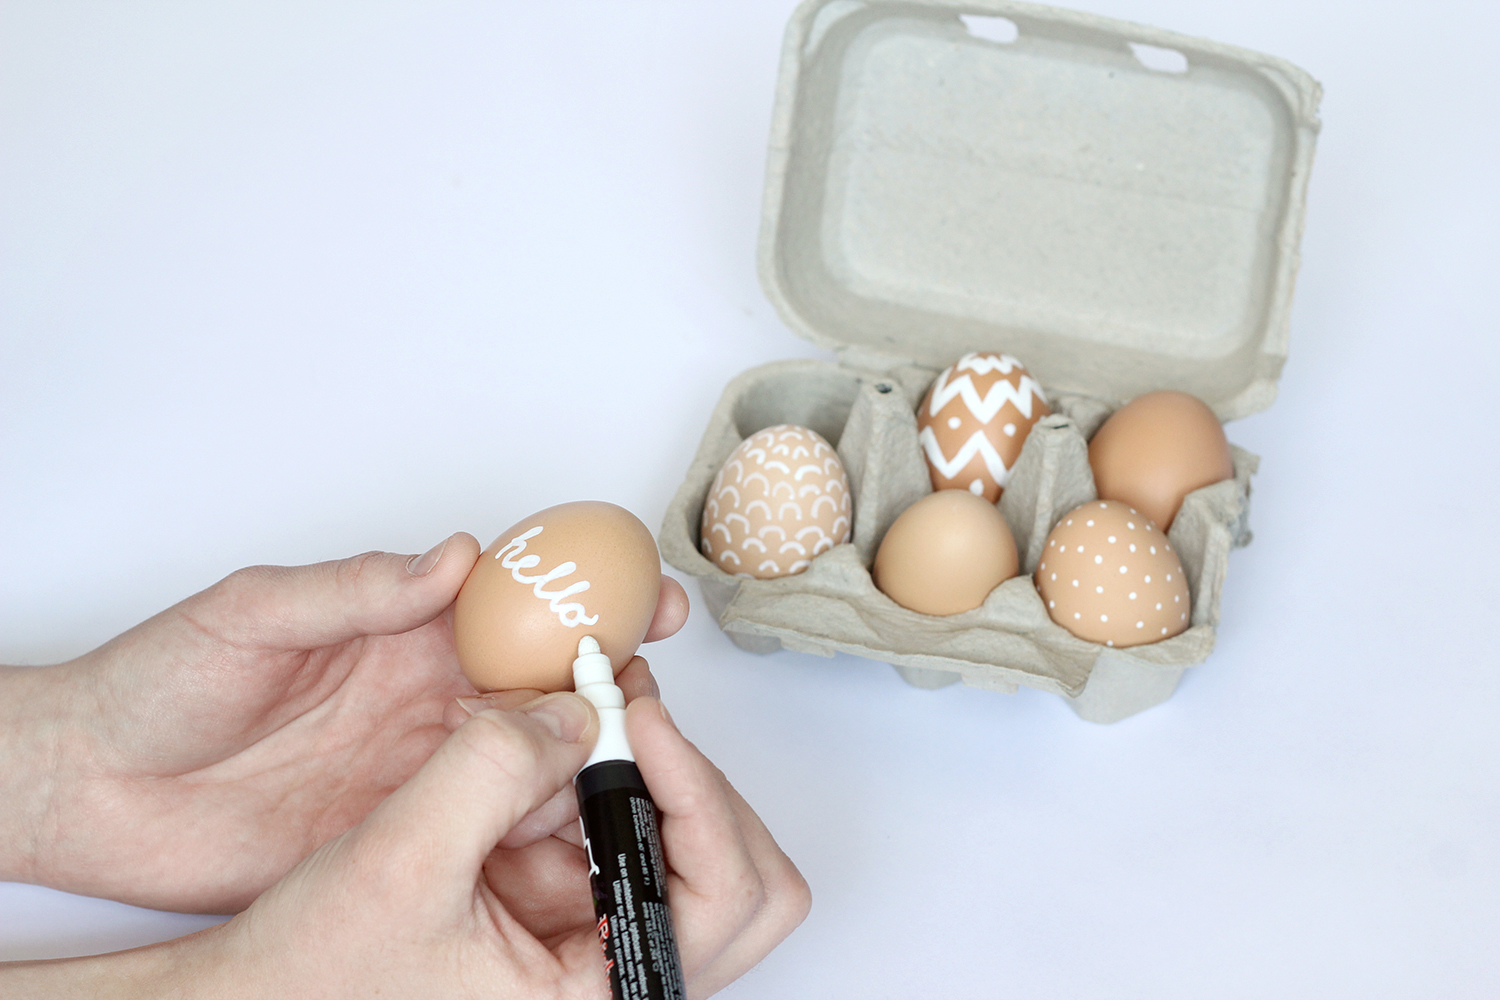 Non-toxic Easter eggs: Chalk pen does the trick again!